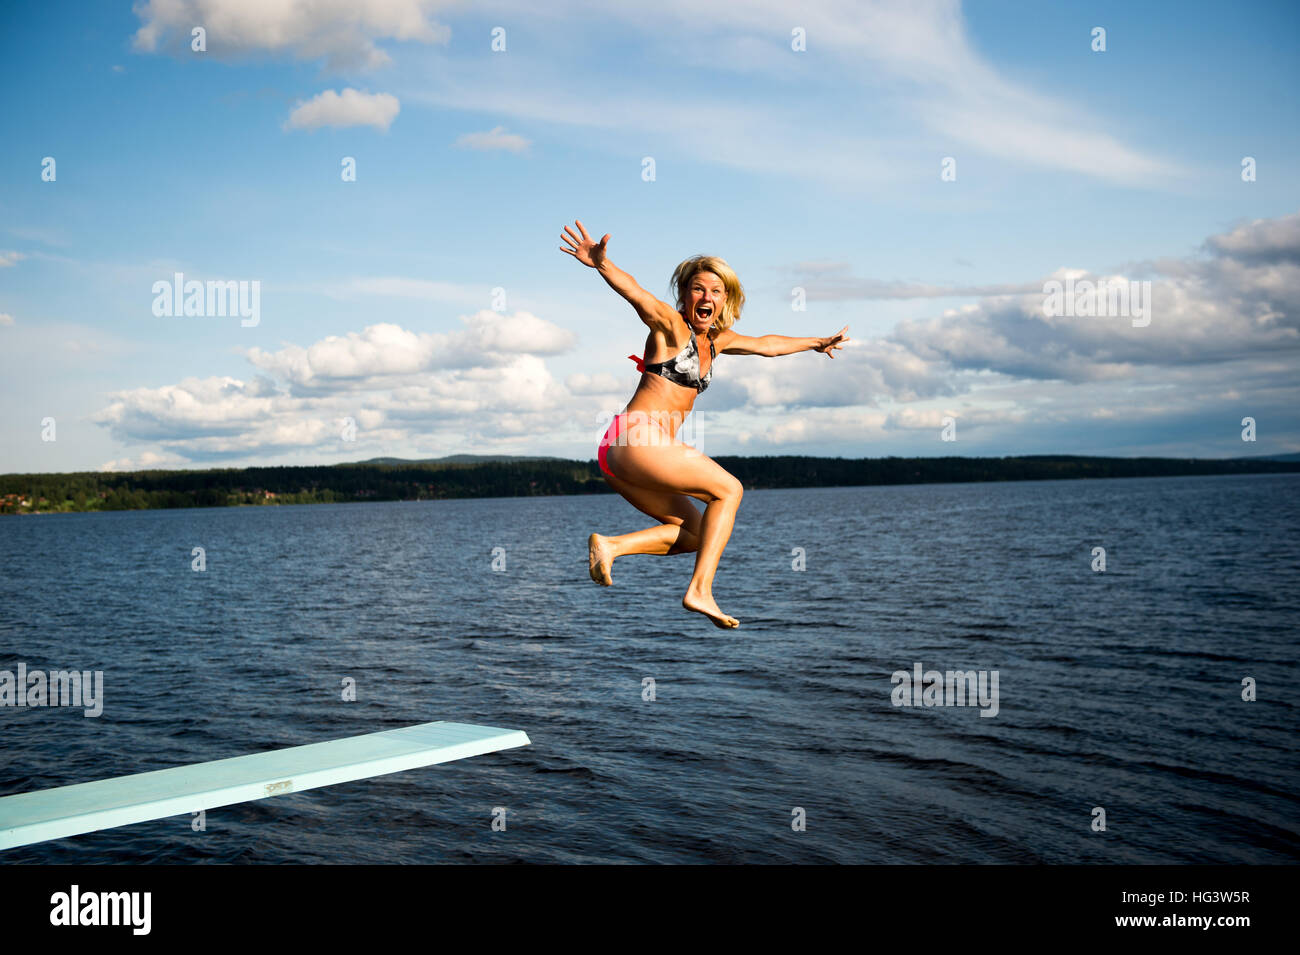 Woman jumping off diving board into lake - Stock Image